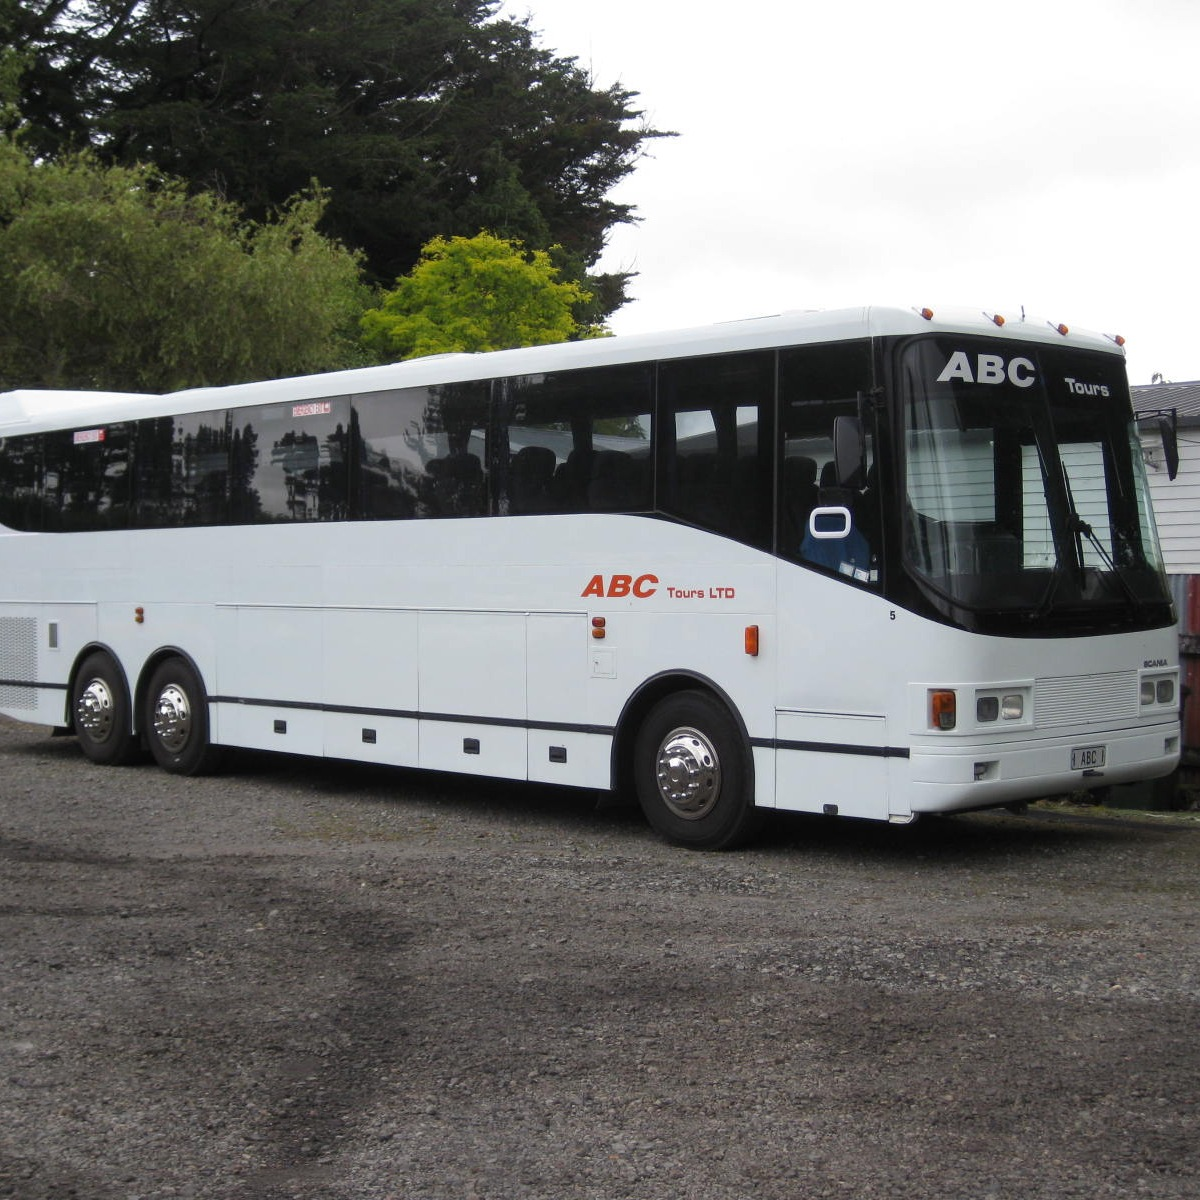 ABC Tours Ltd